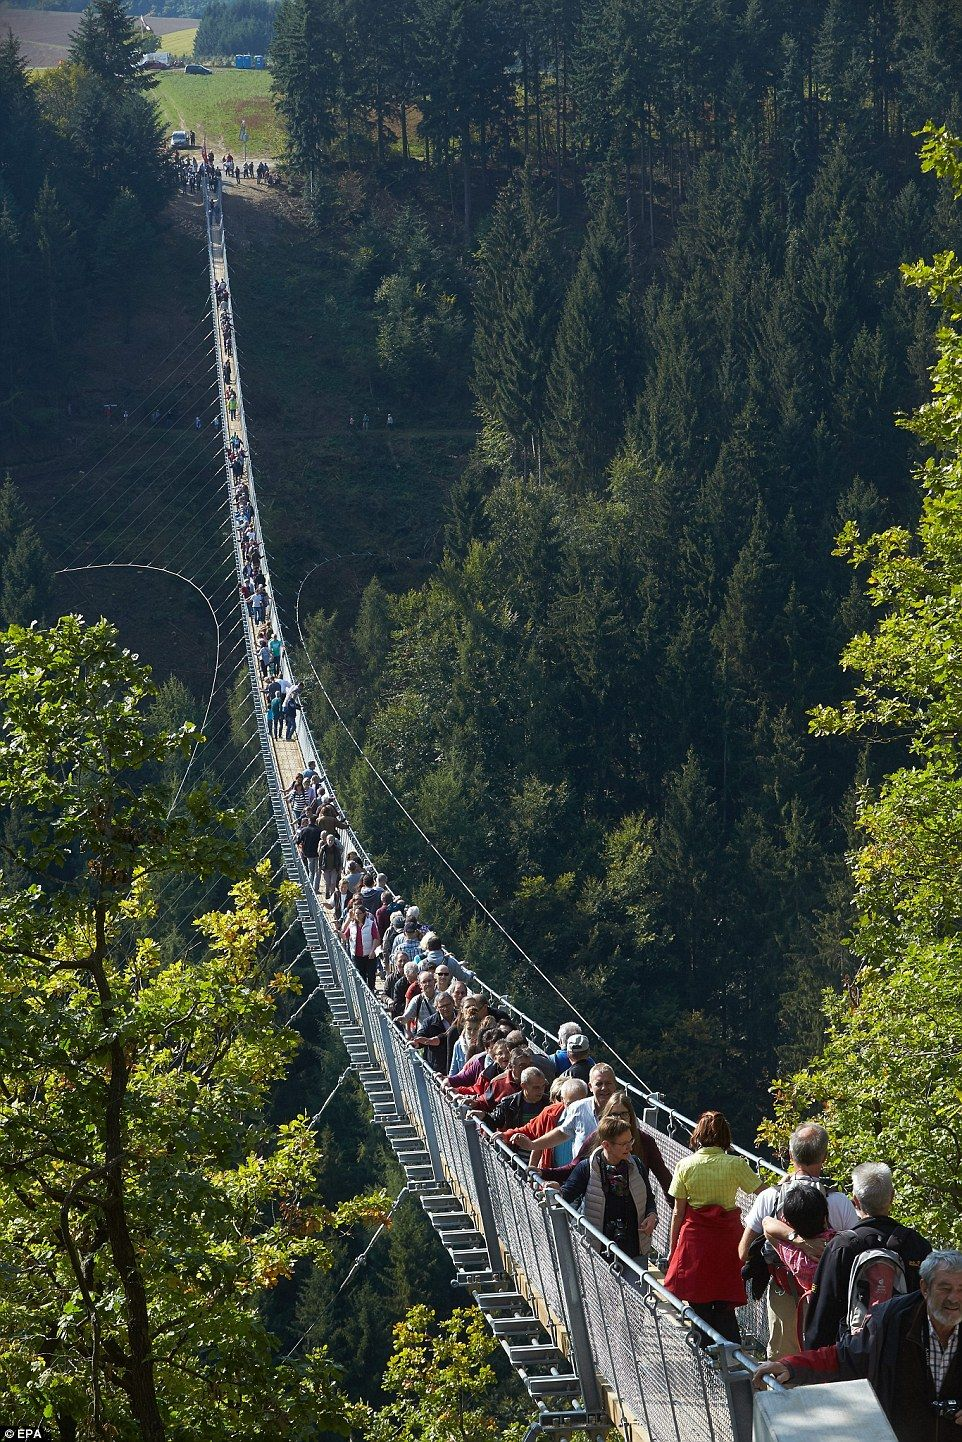 New rope suspension bridge in Germany offers thrills for visitors ...